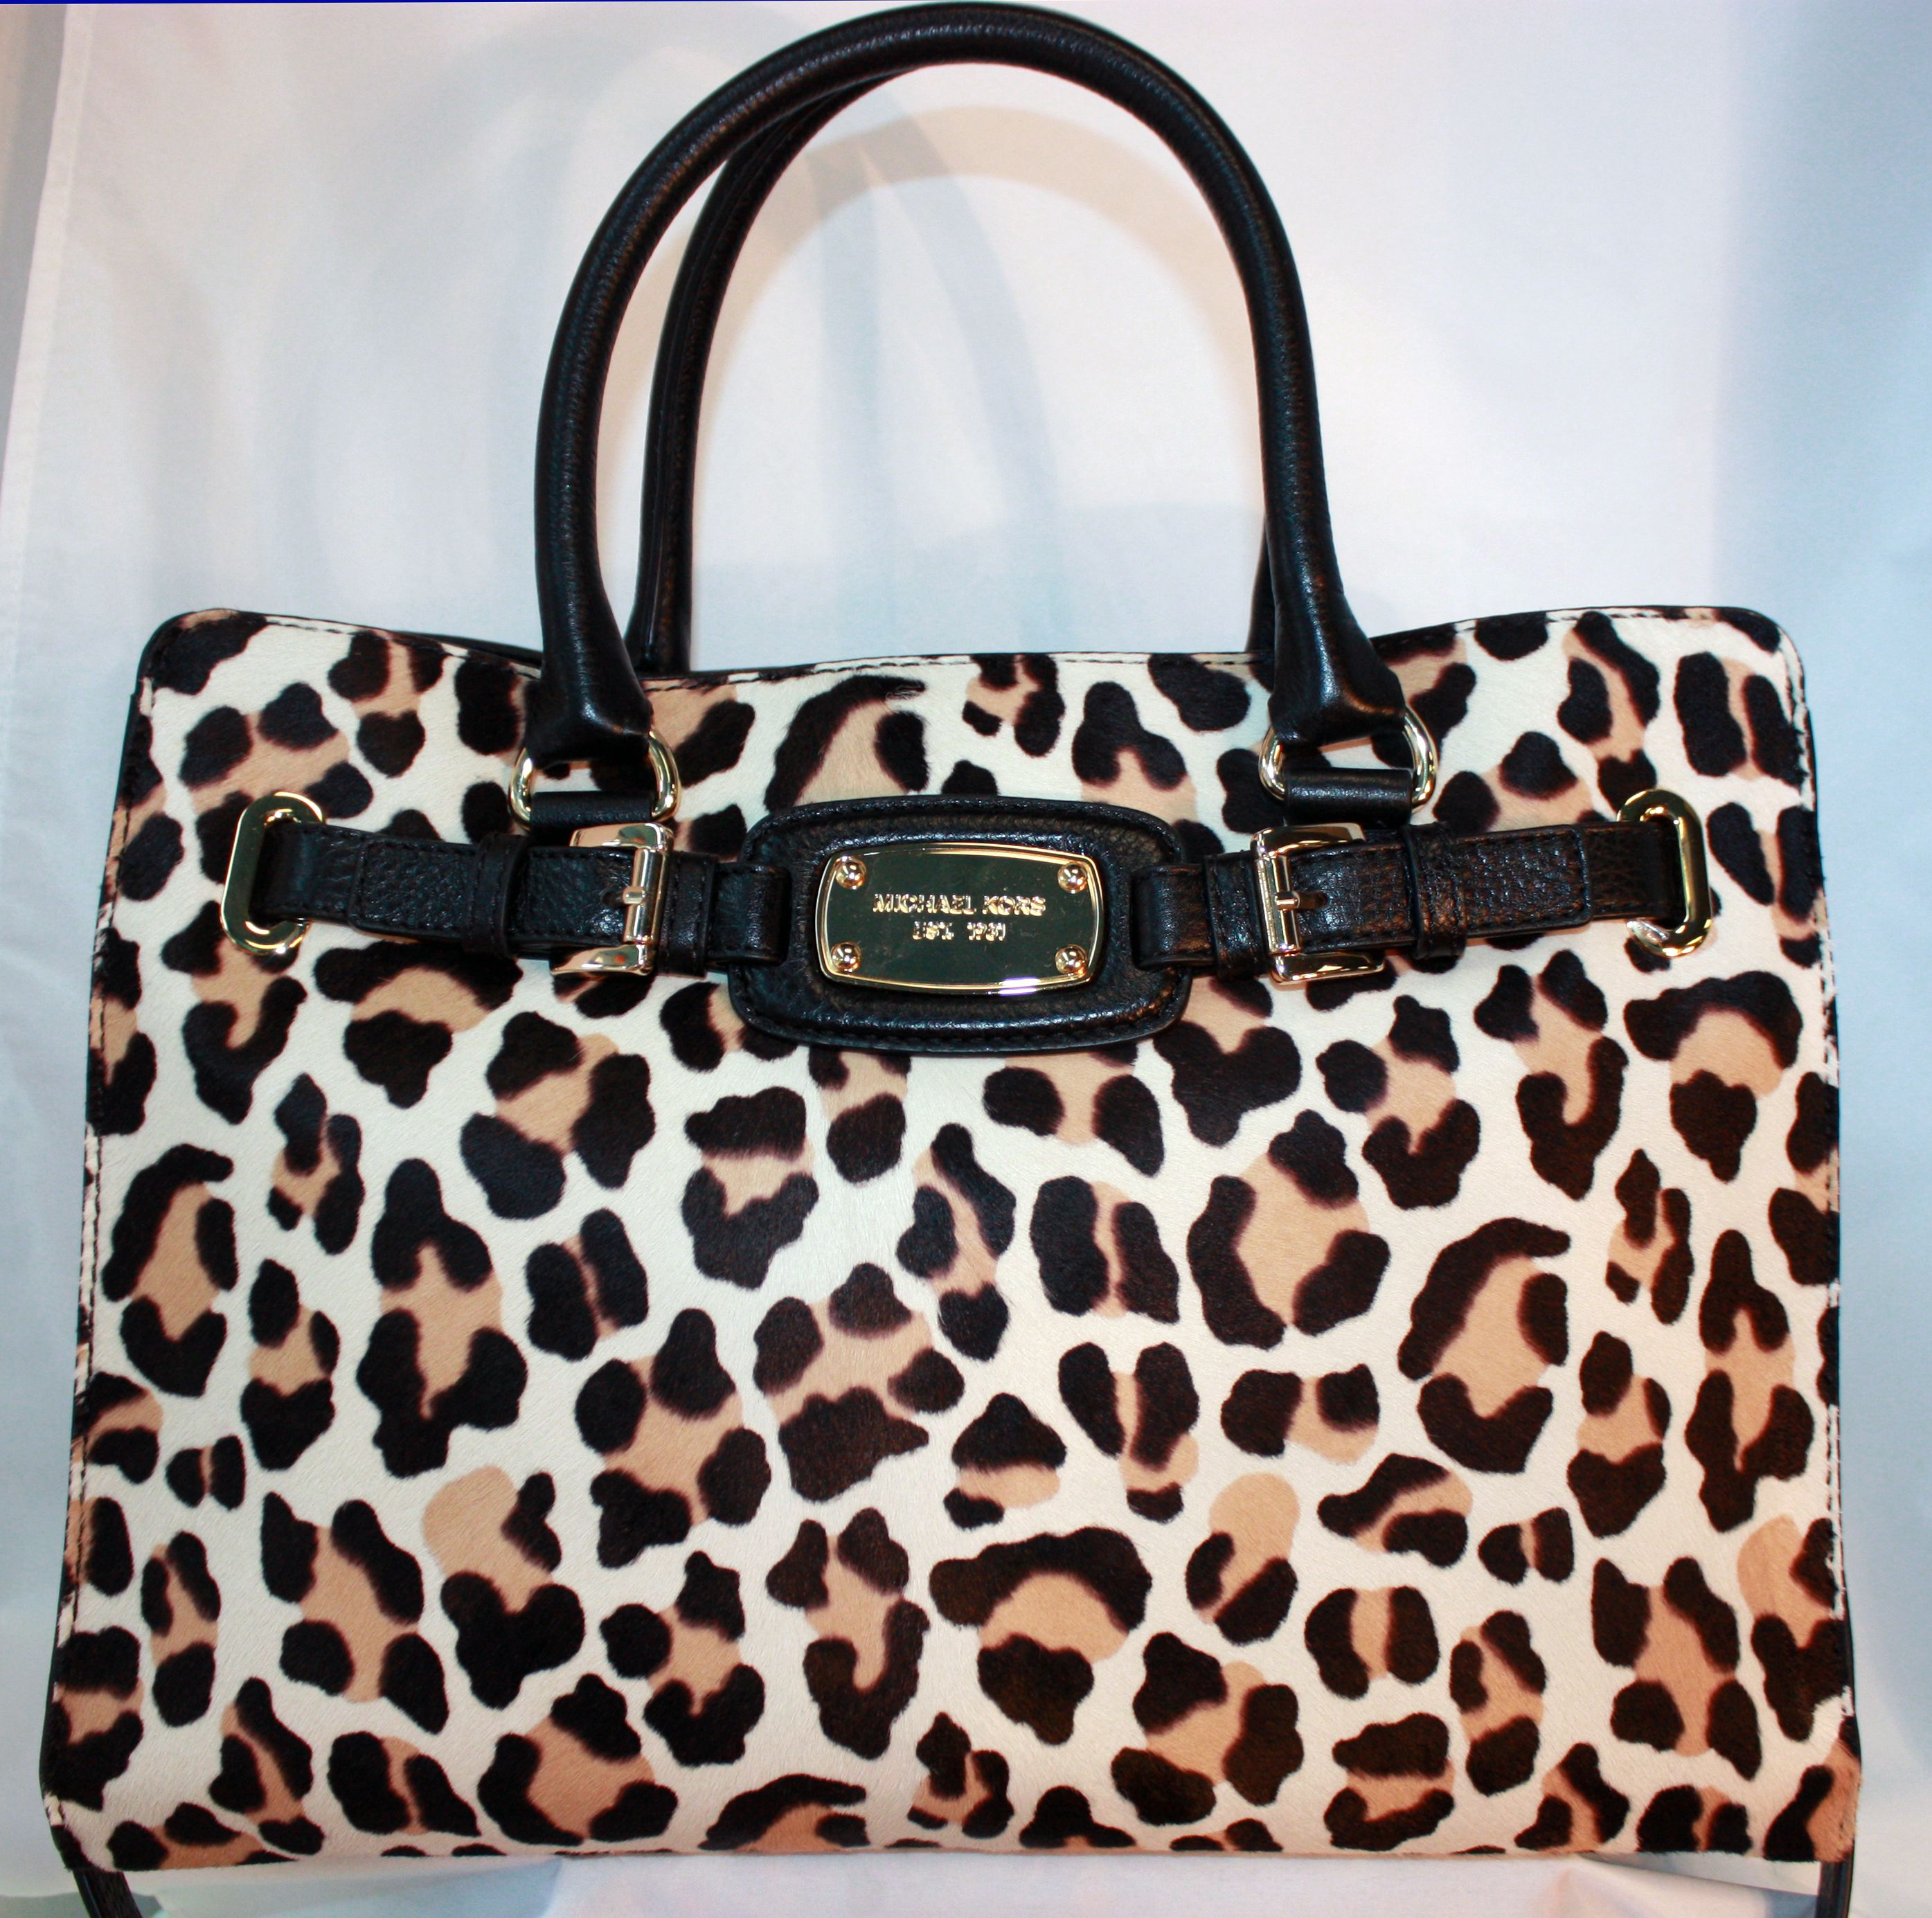 Michael Kors Hamilton - This is a beautiful bag with the leopard design that will never go out of style.